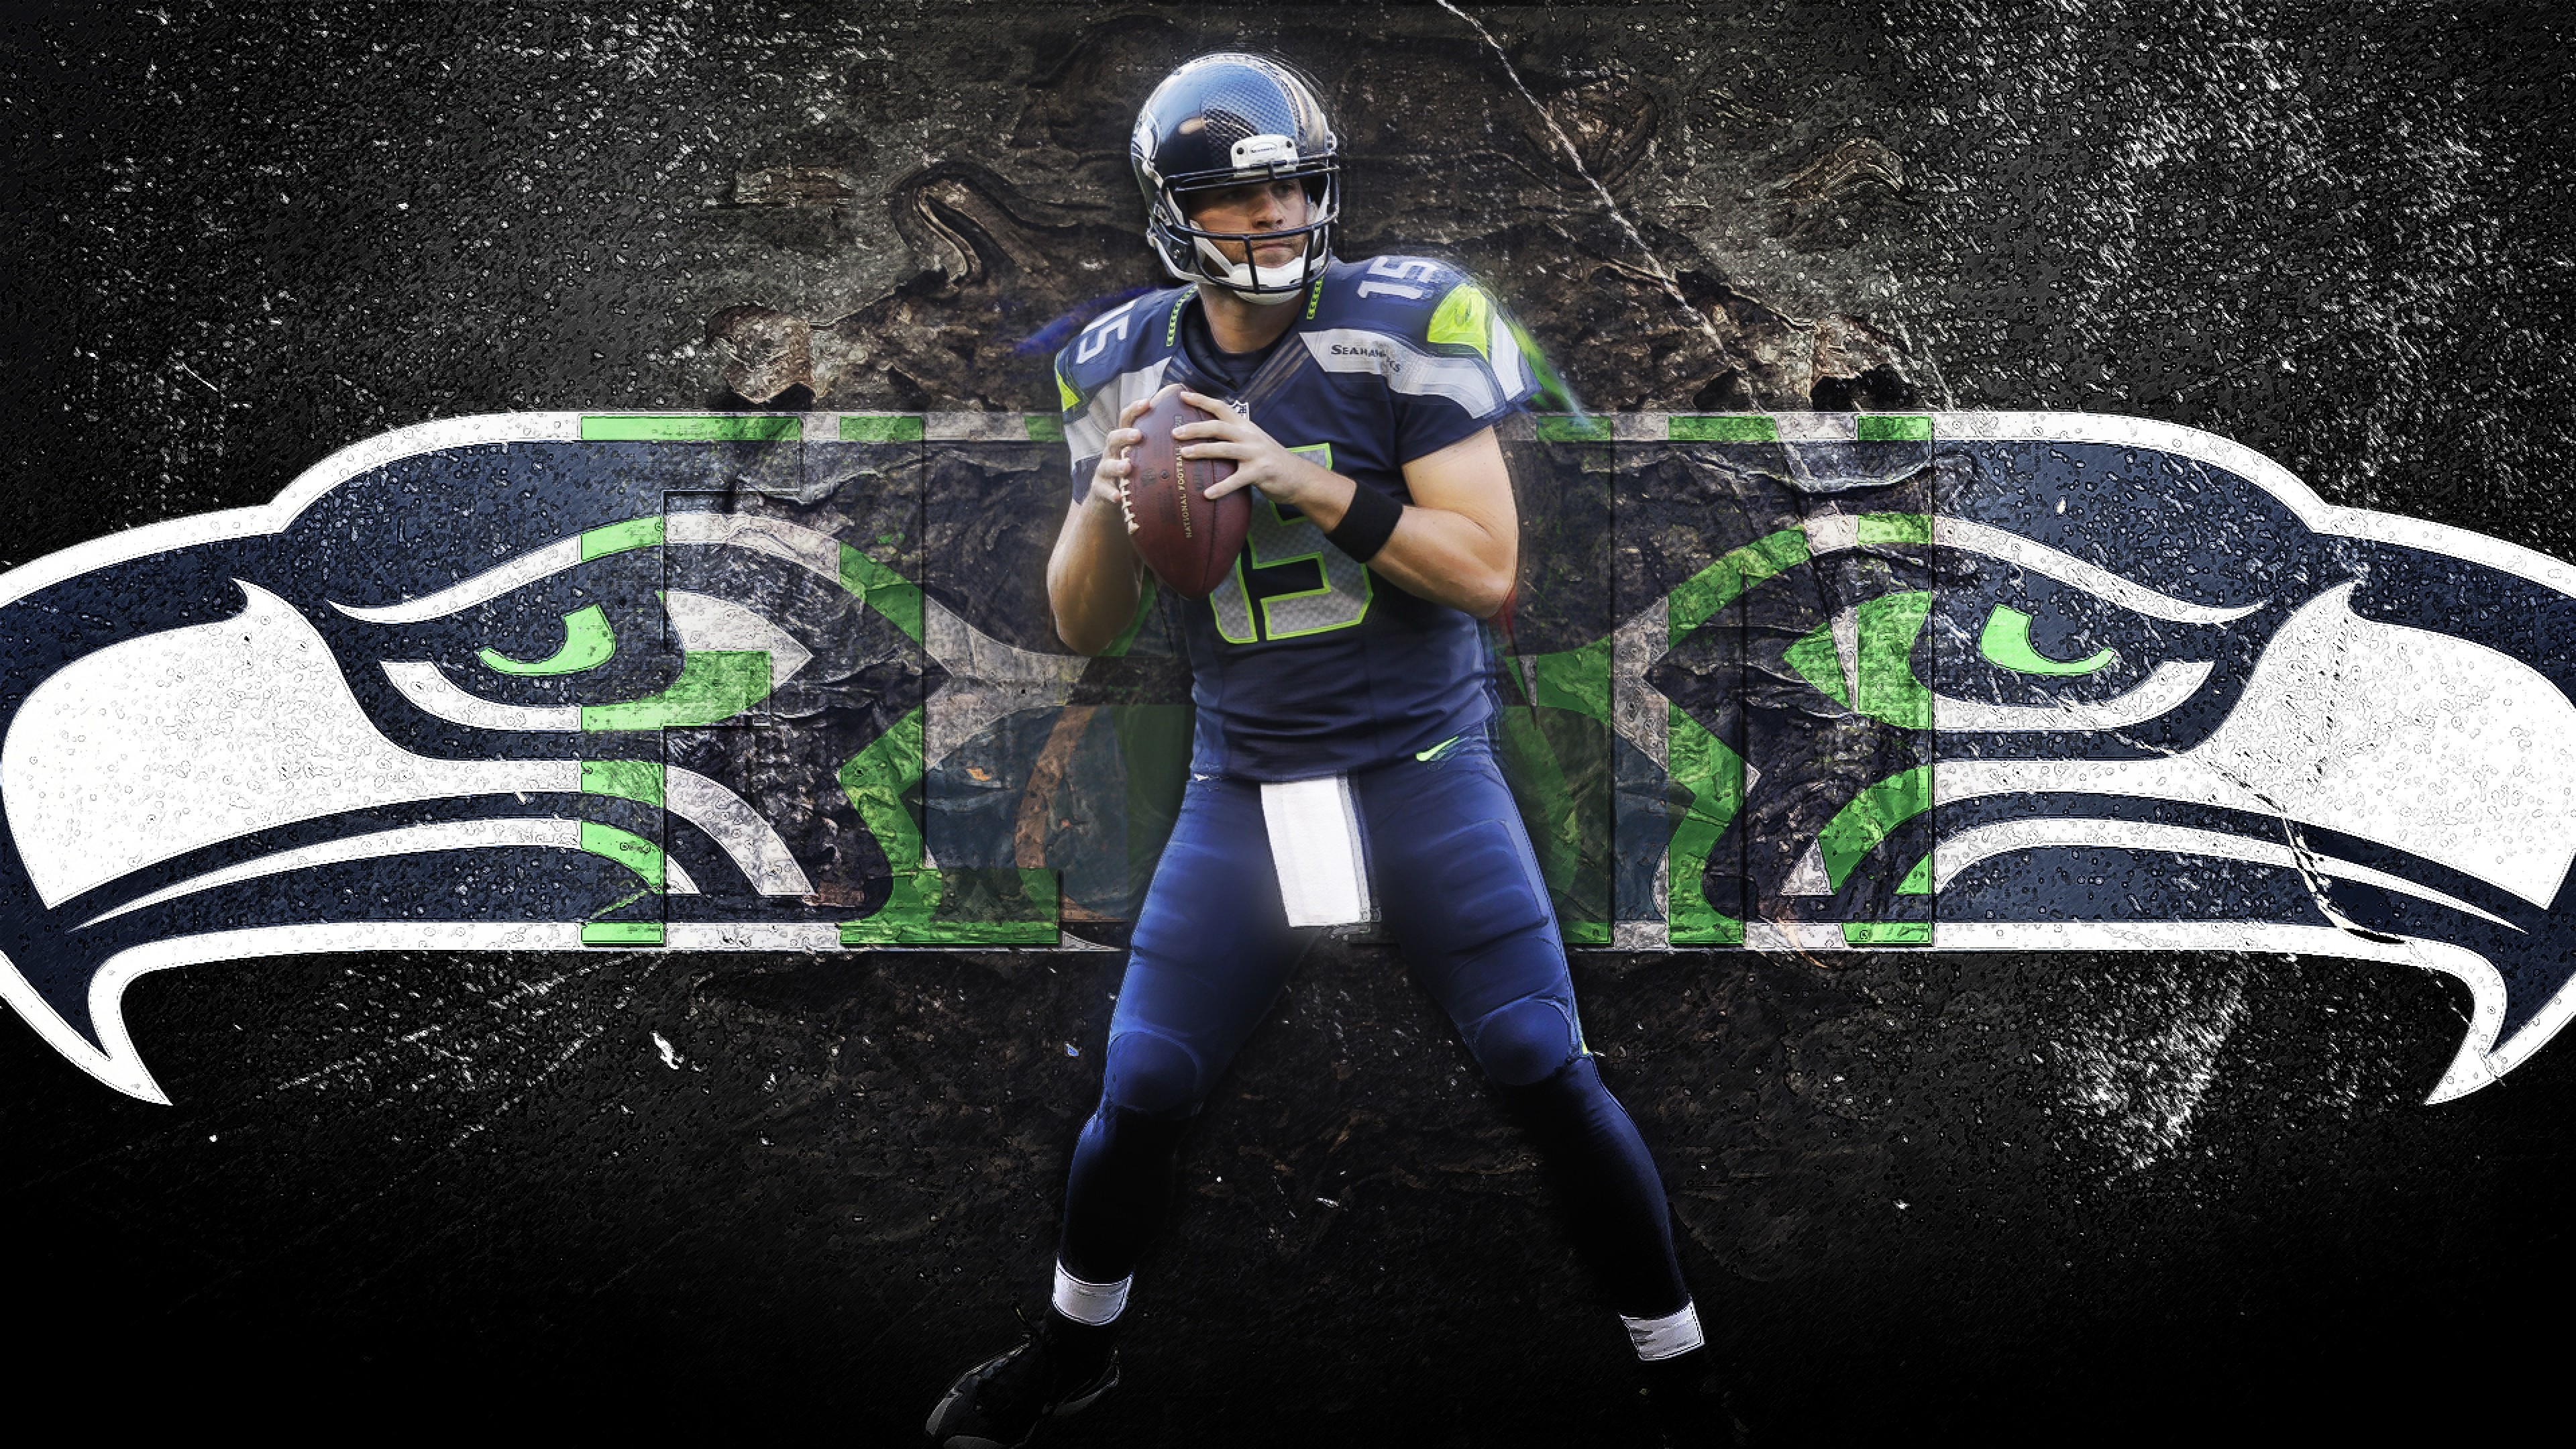 3840x2160 seattle seahawks hd wallpaper widescreen Seattle Seahawks HD Wallpaper  Widescreen - 52DazheW Gallery